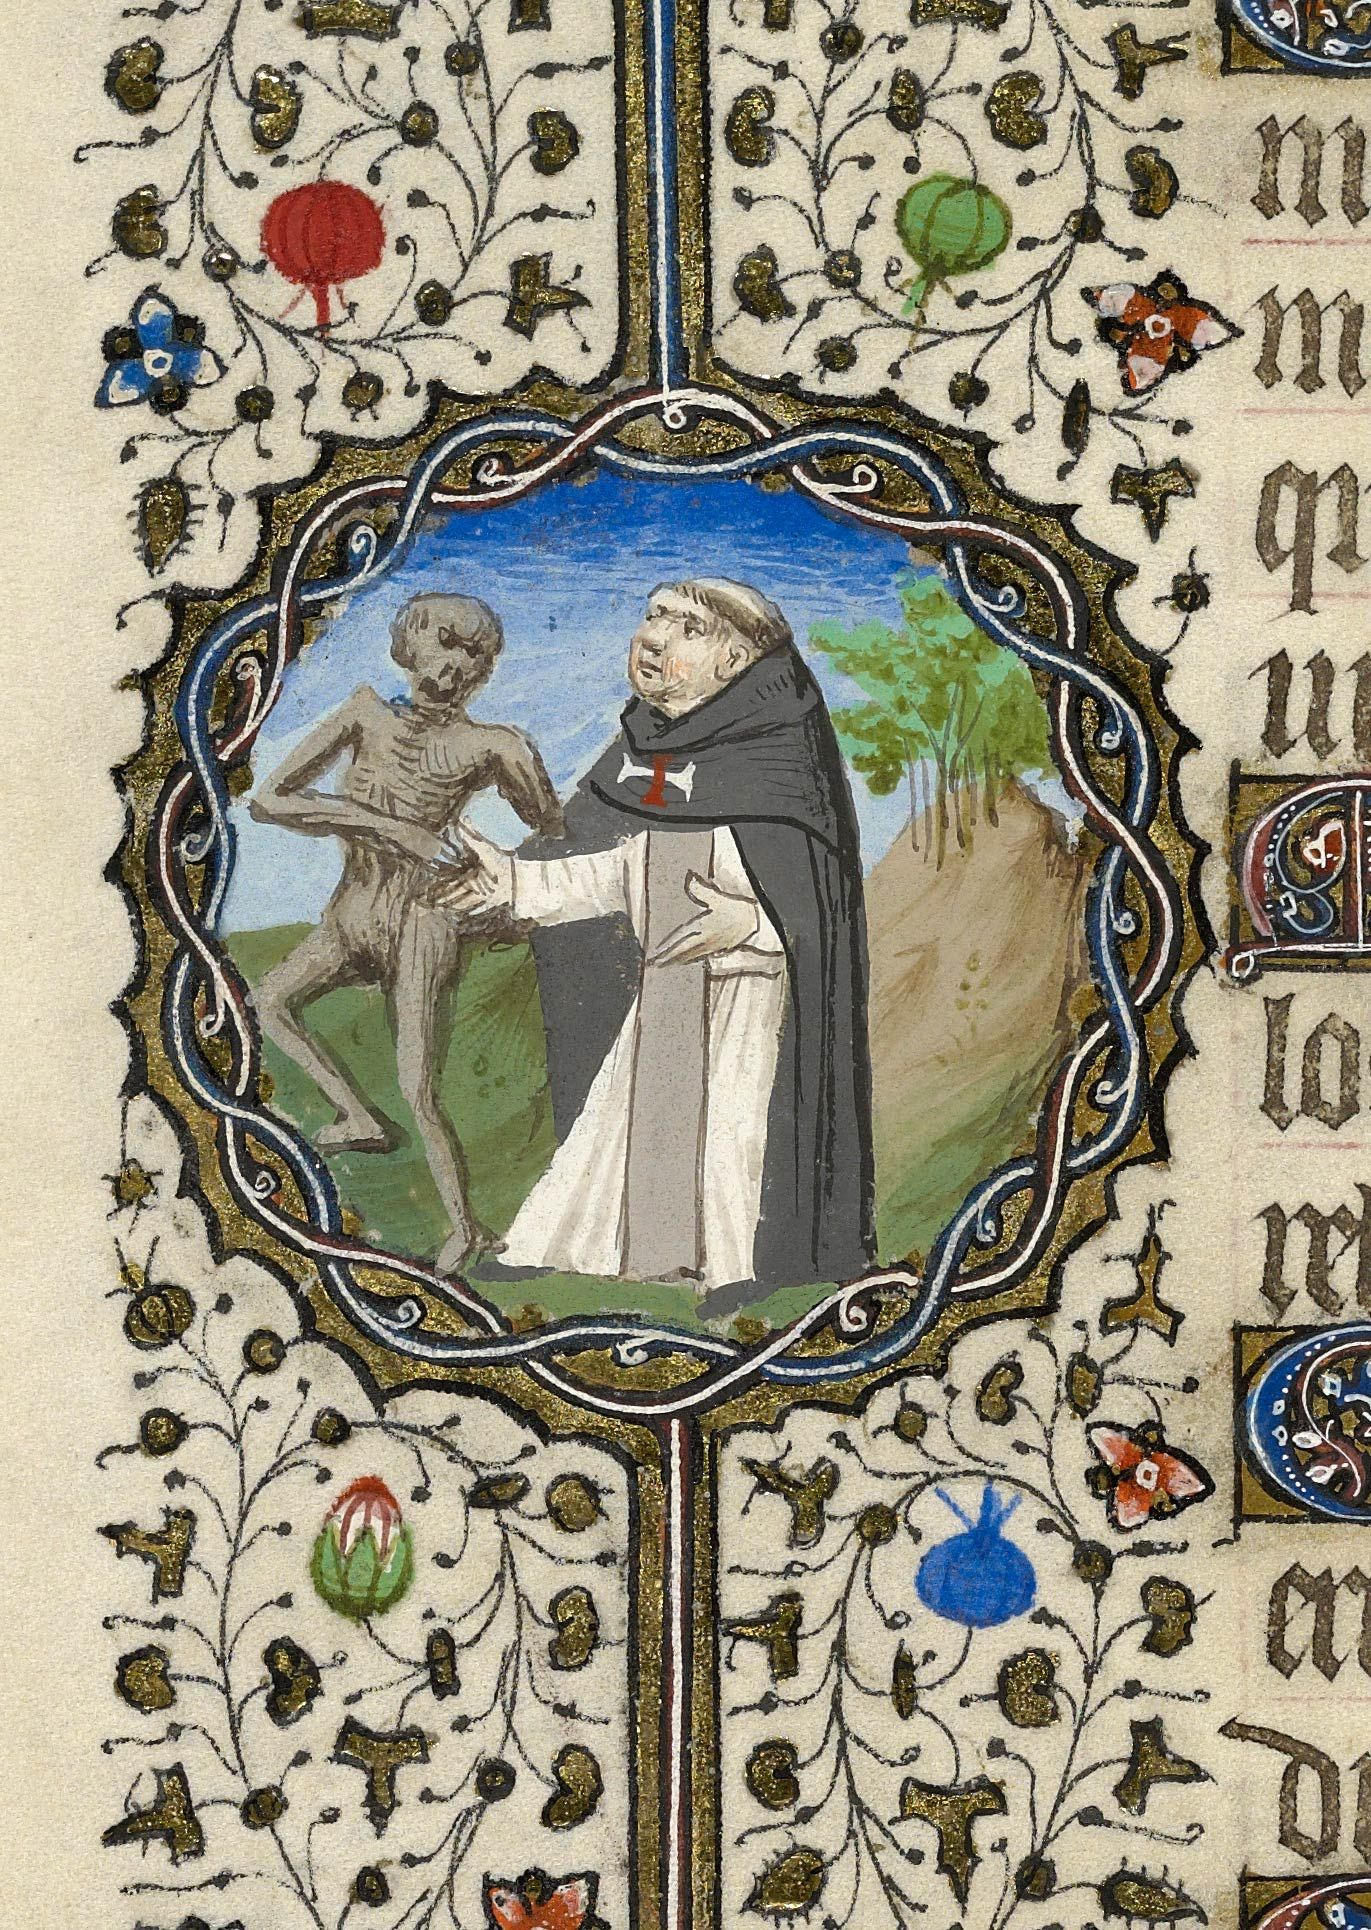 Skeleton with Monk | Book of Hours | France, Paris | 1430-1435 | The Morgan Library & Museum